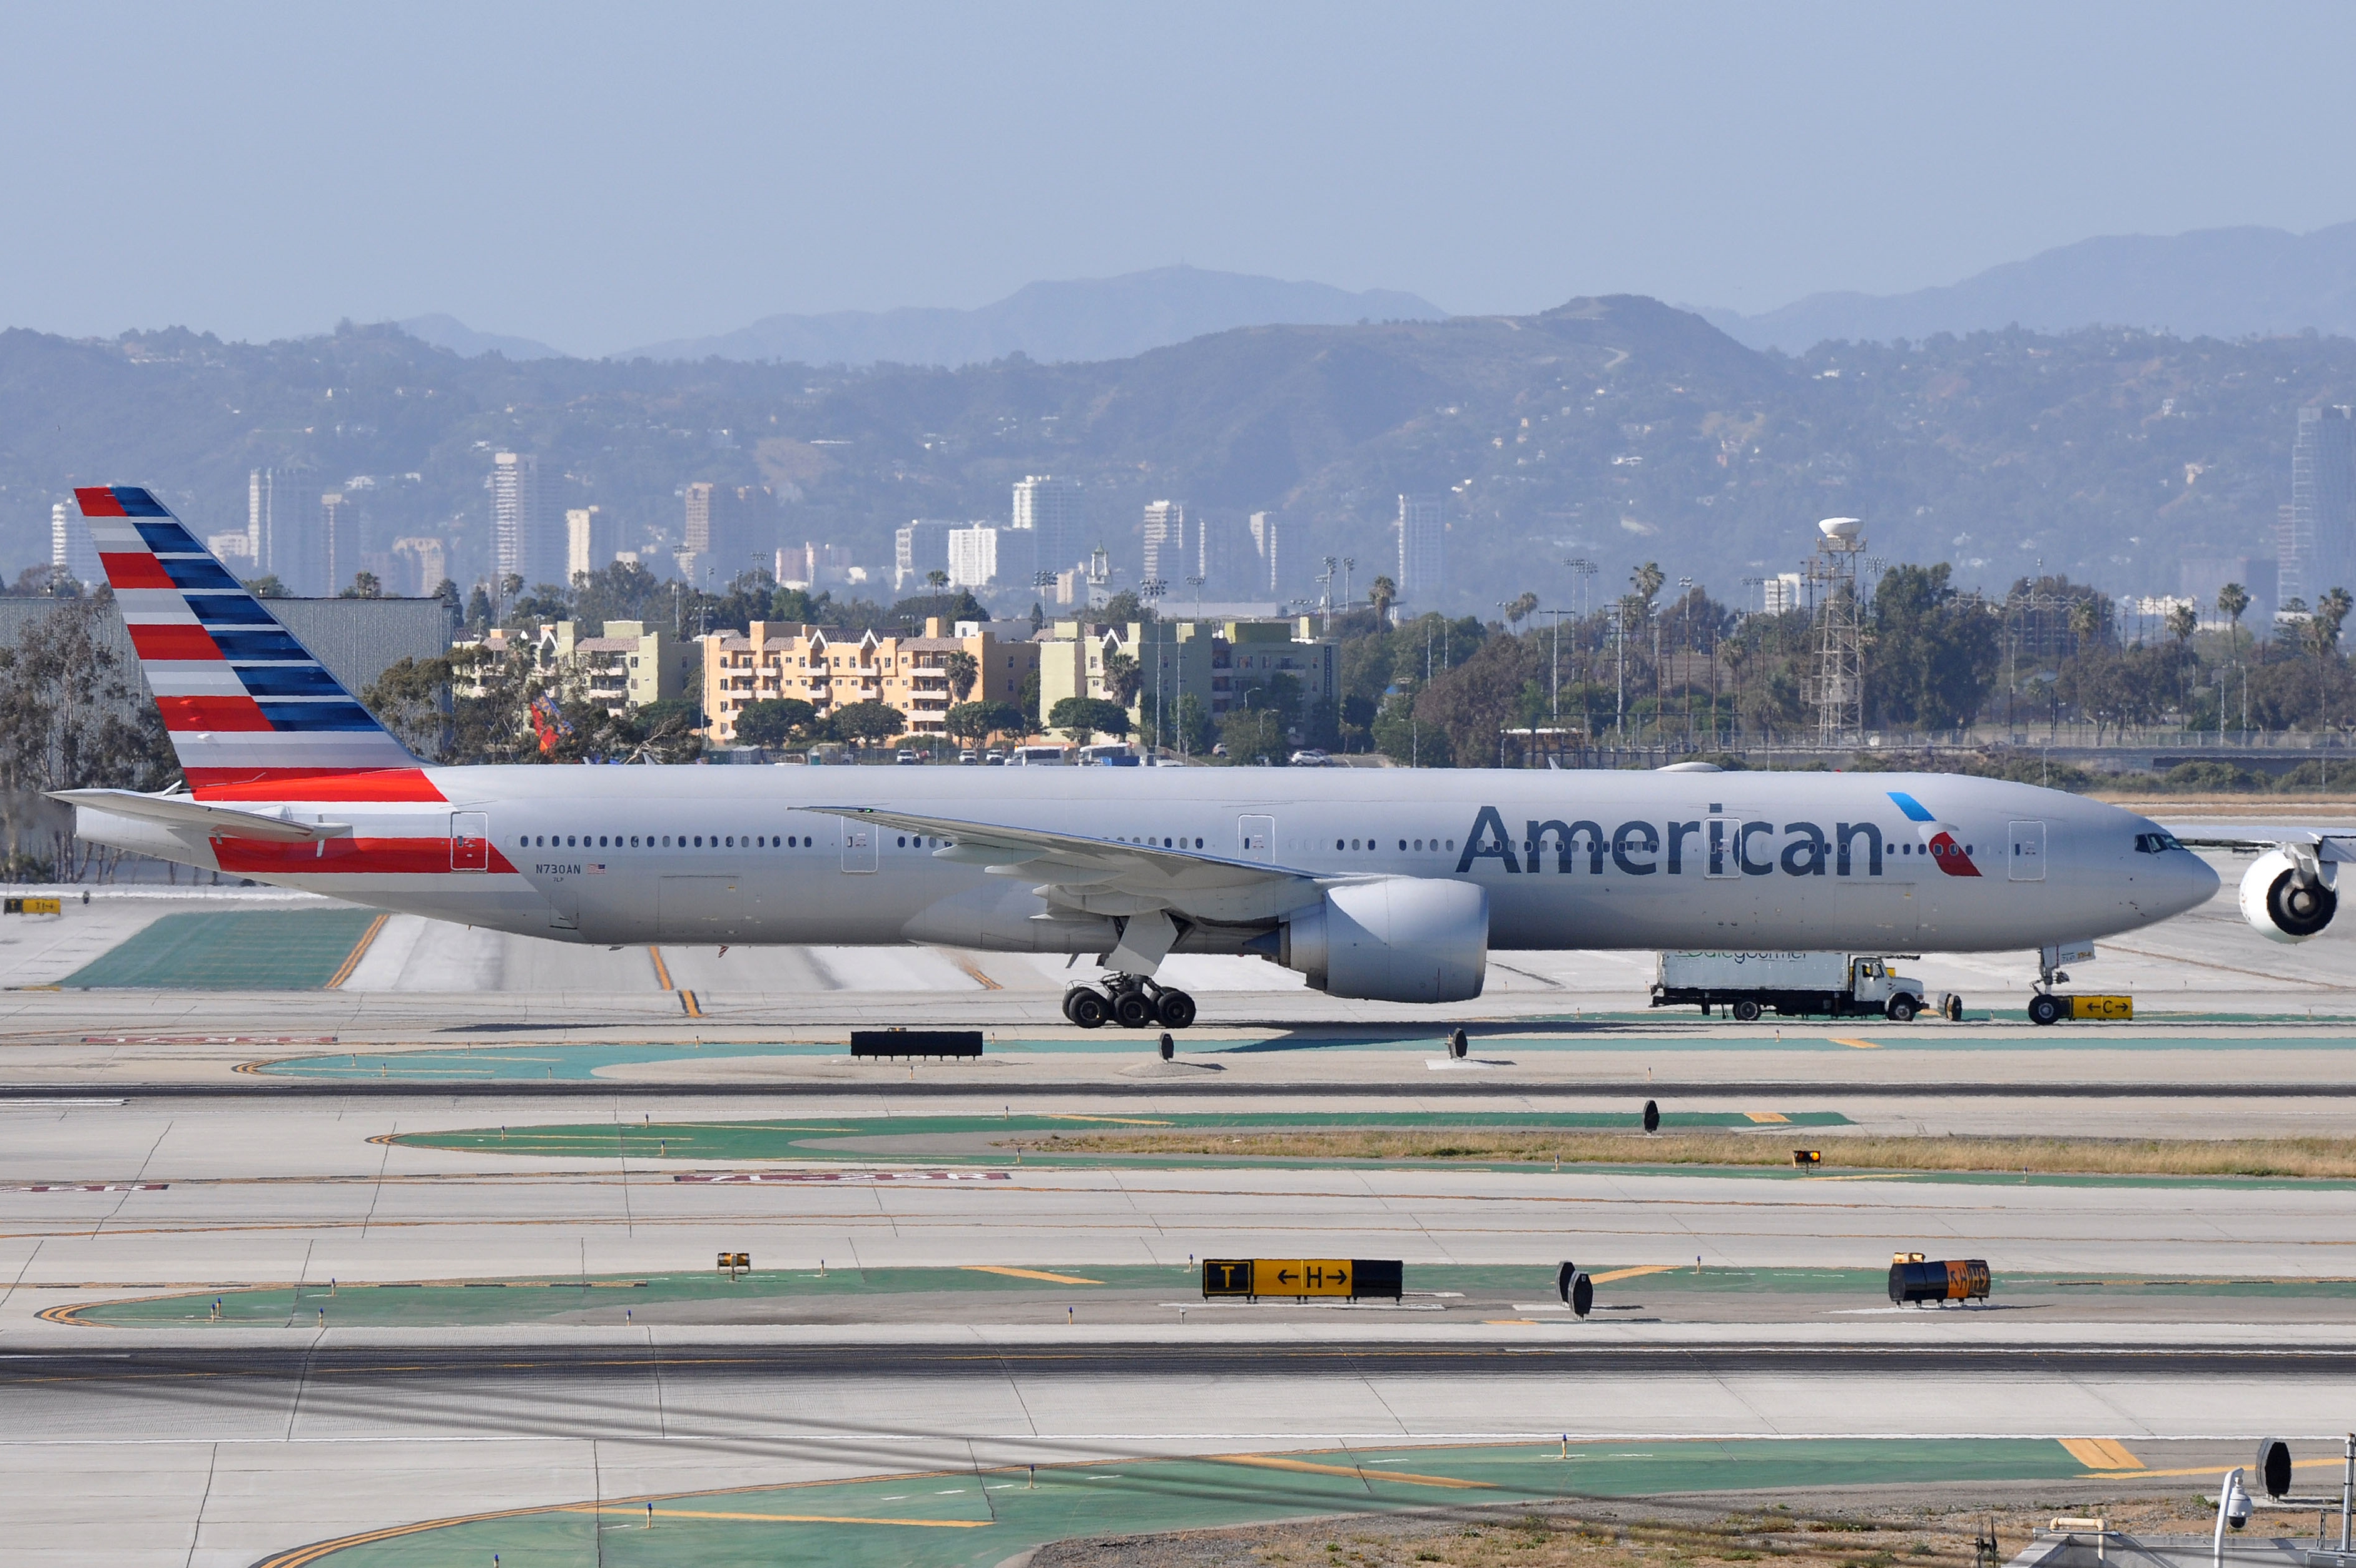 American Airlines Check In Time Lax Wiring Diagrams Simulated Inductor Circuit Diagram Tradeoficcom File Boeing 777 323 Er N730an Rh Commons Wikimedia Org Gates